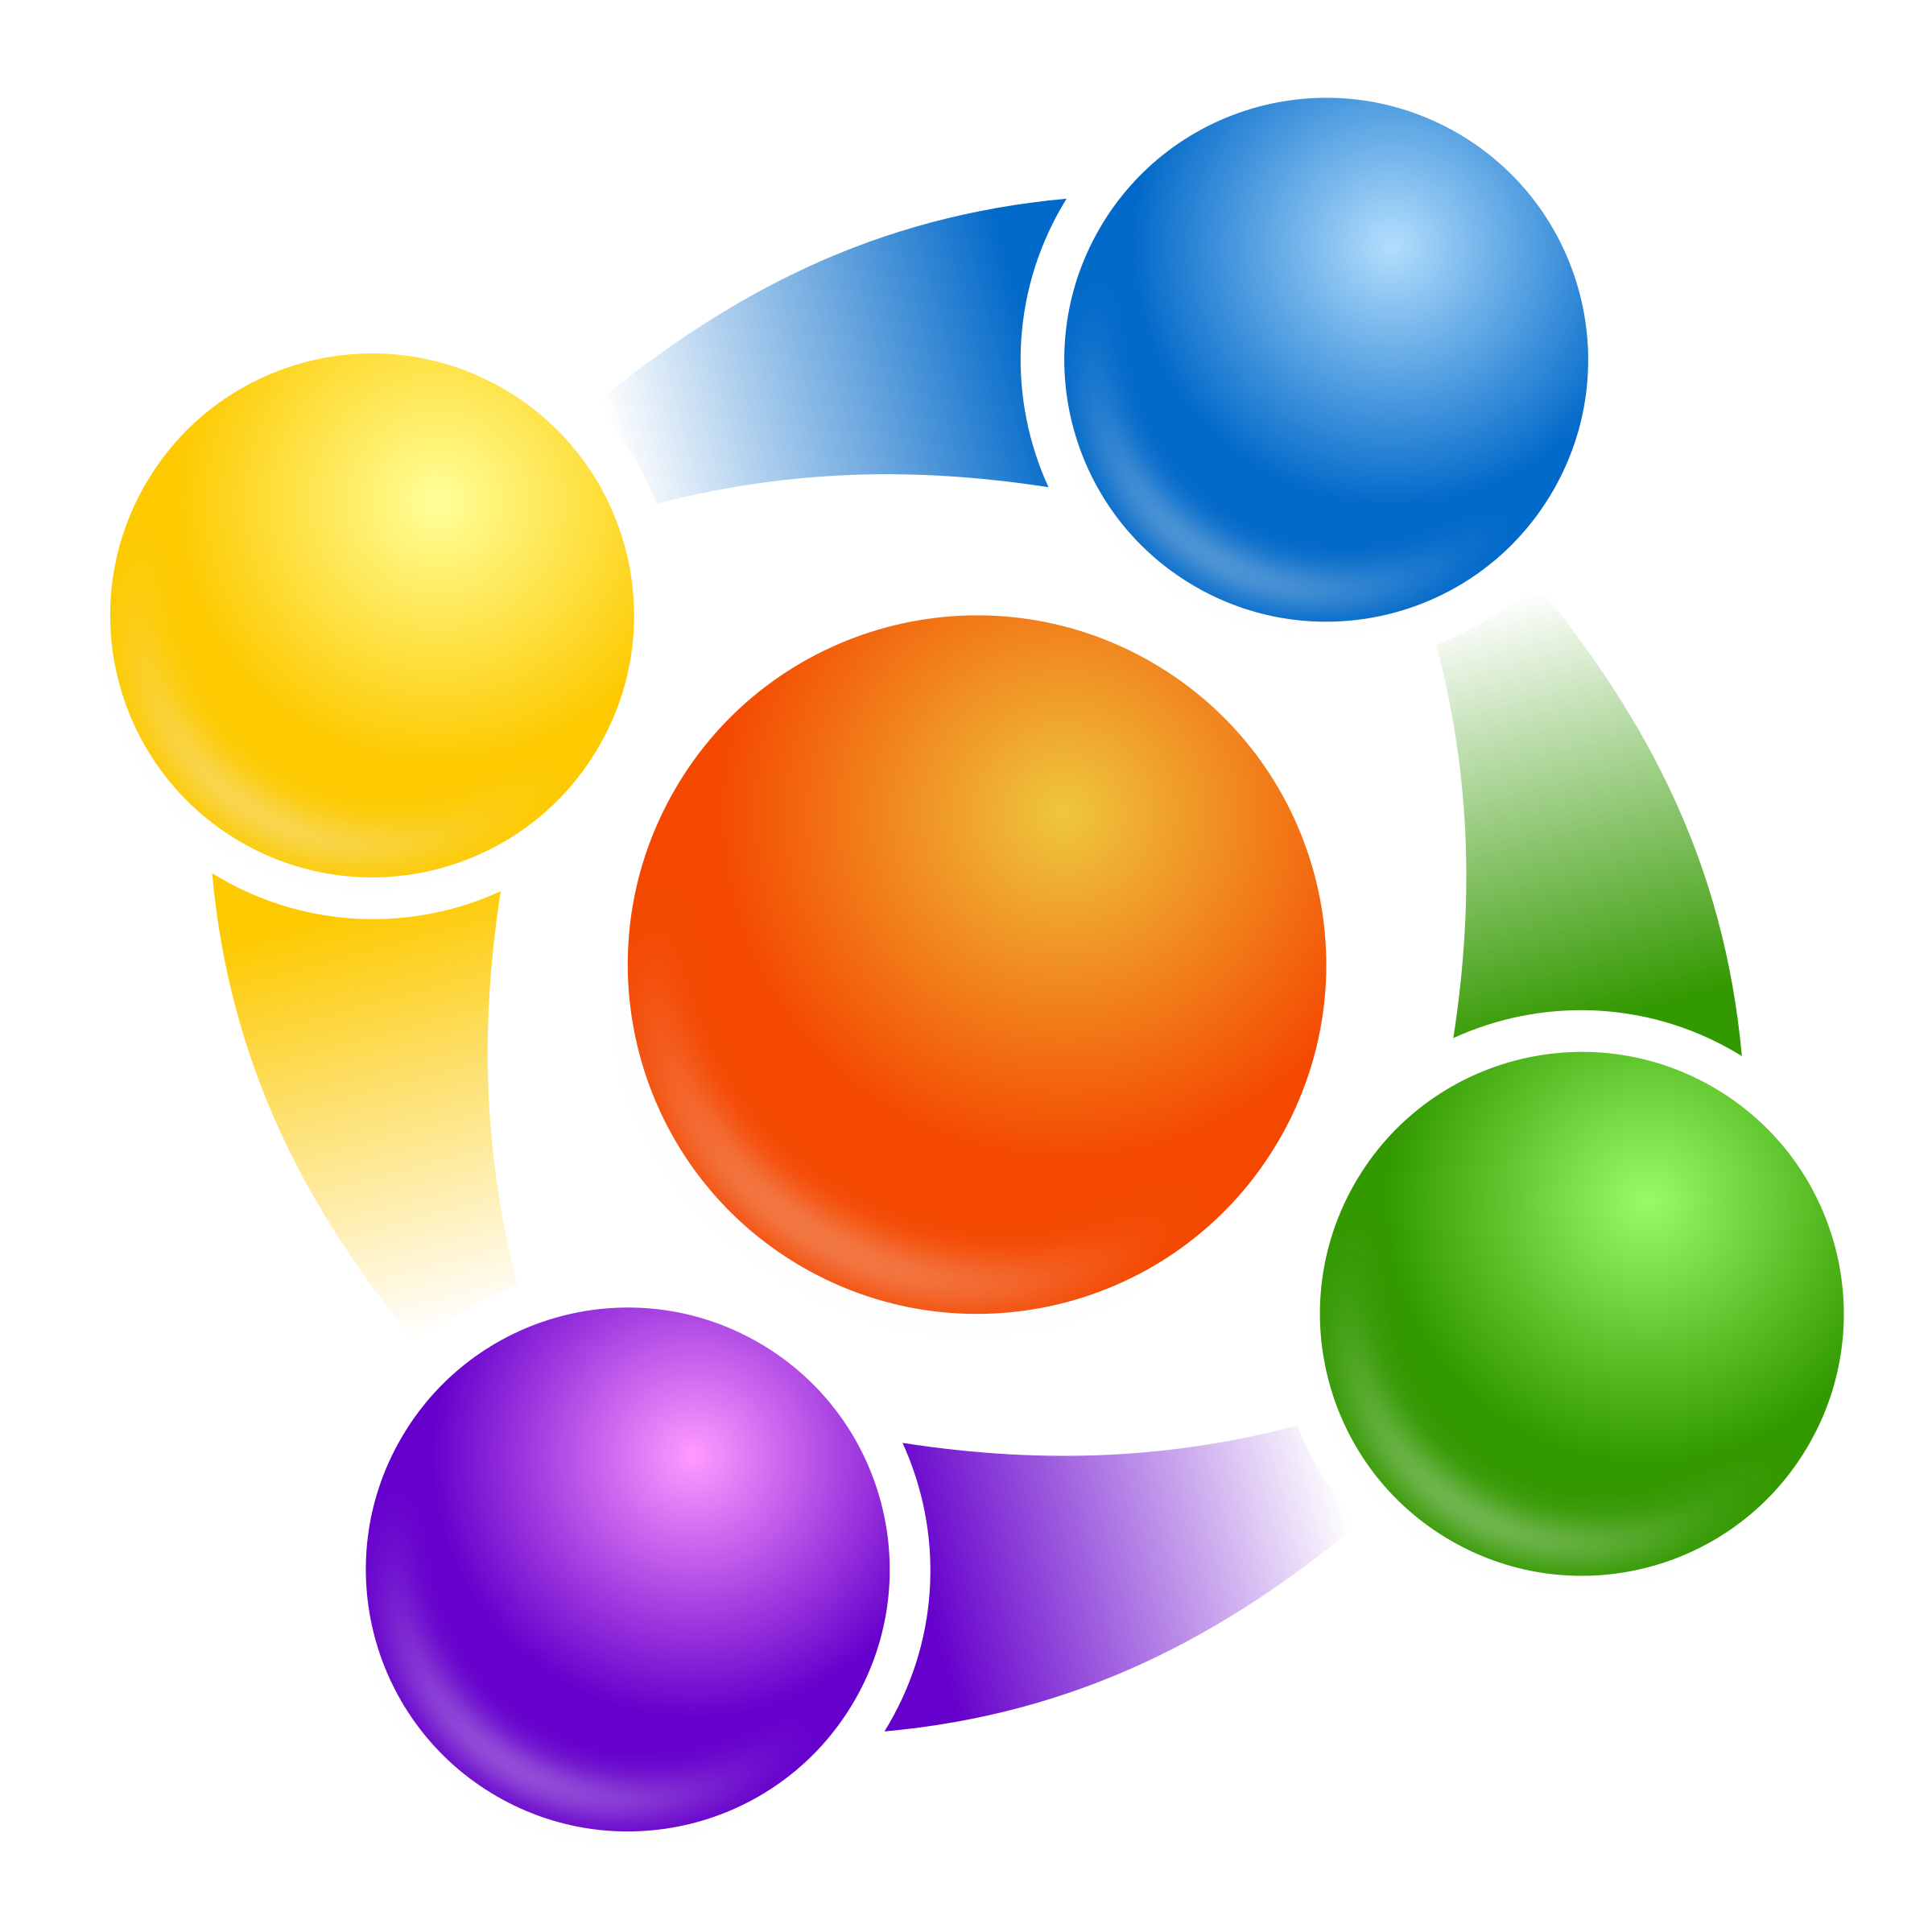 Culture clipart acculturation. Free research conference logo